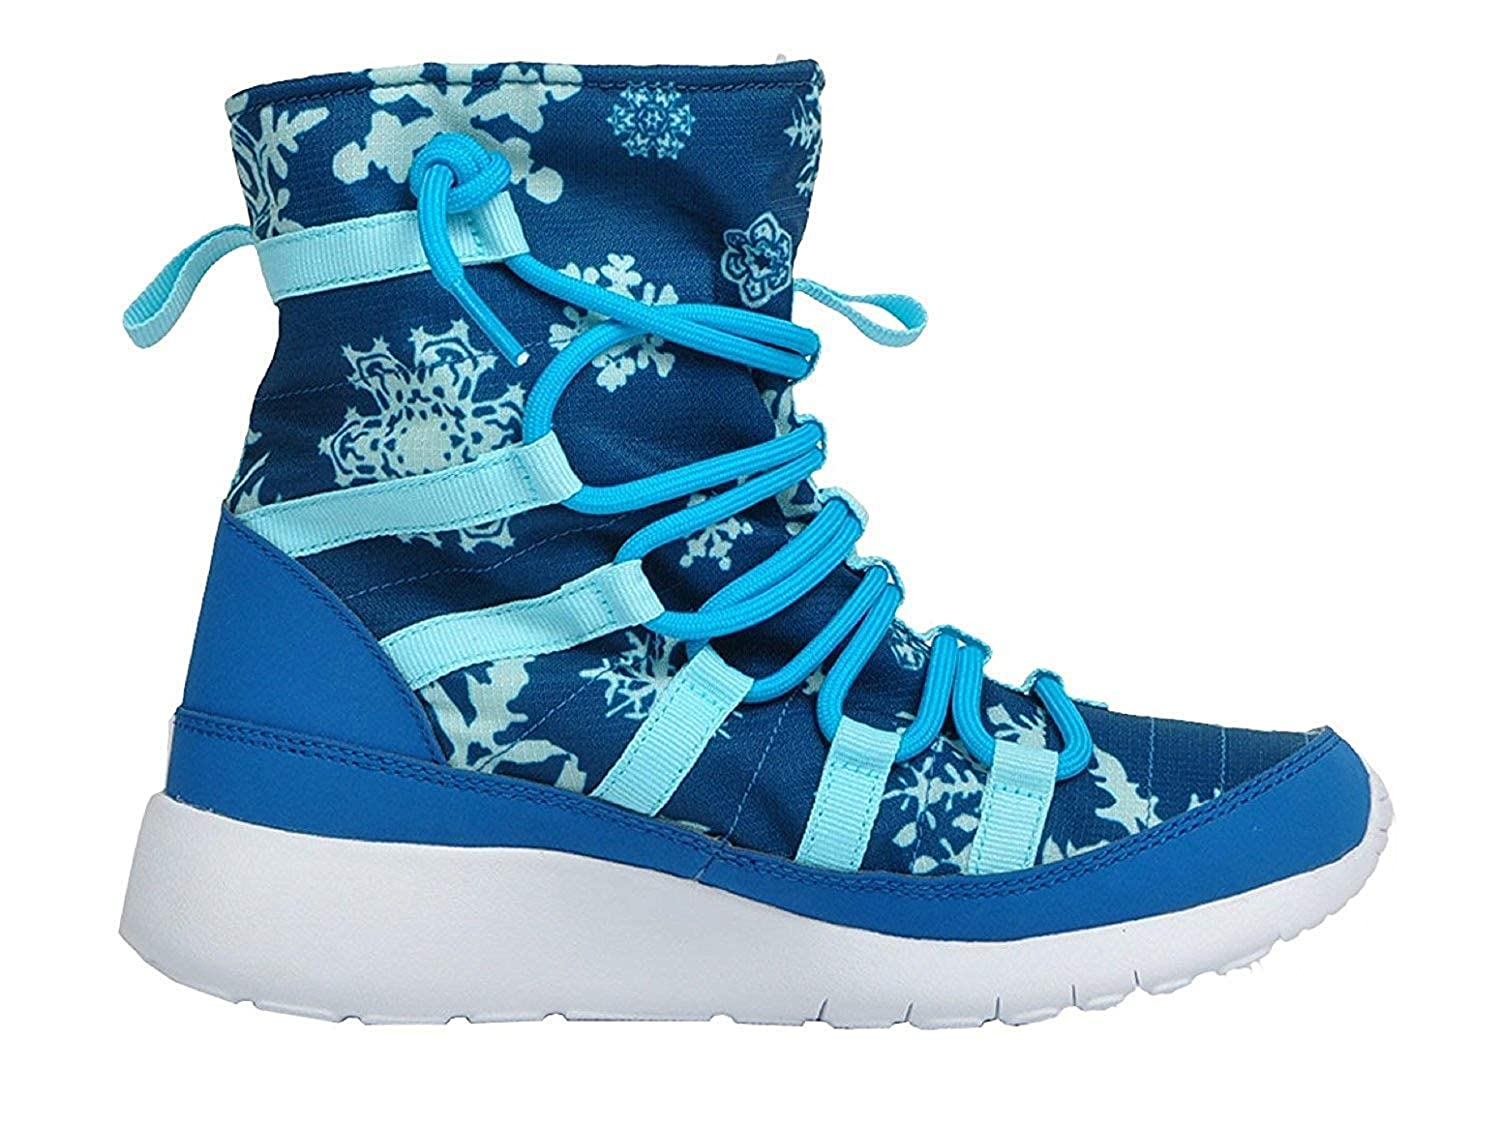 5.5 Big Kid M, Brigade Blue//BL Lagoon-CP-WHT GS 807744-400 Blue Shearing Boots Nike Girl Roshe One Hi Print